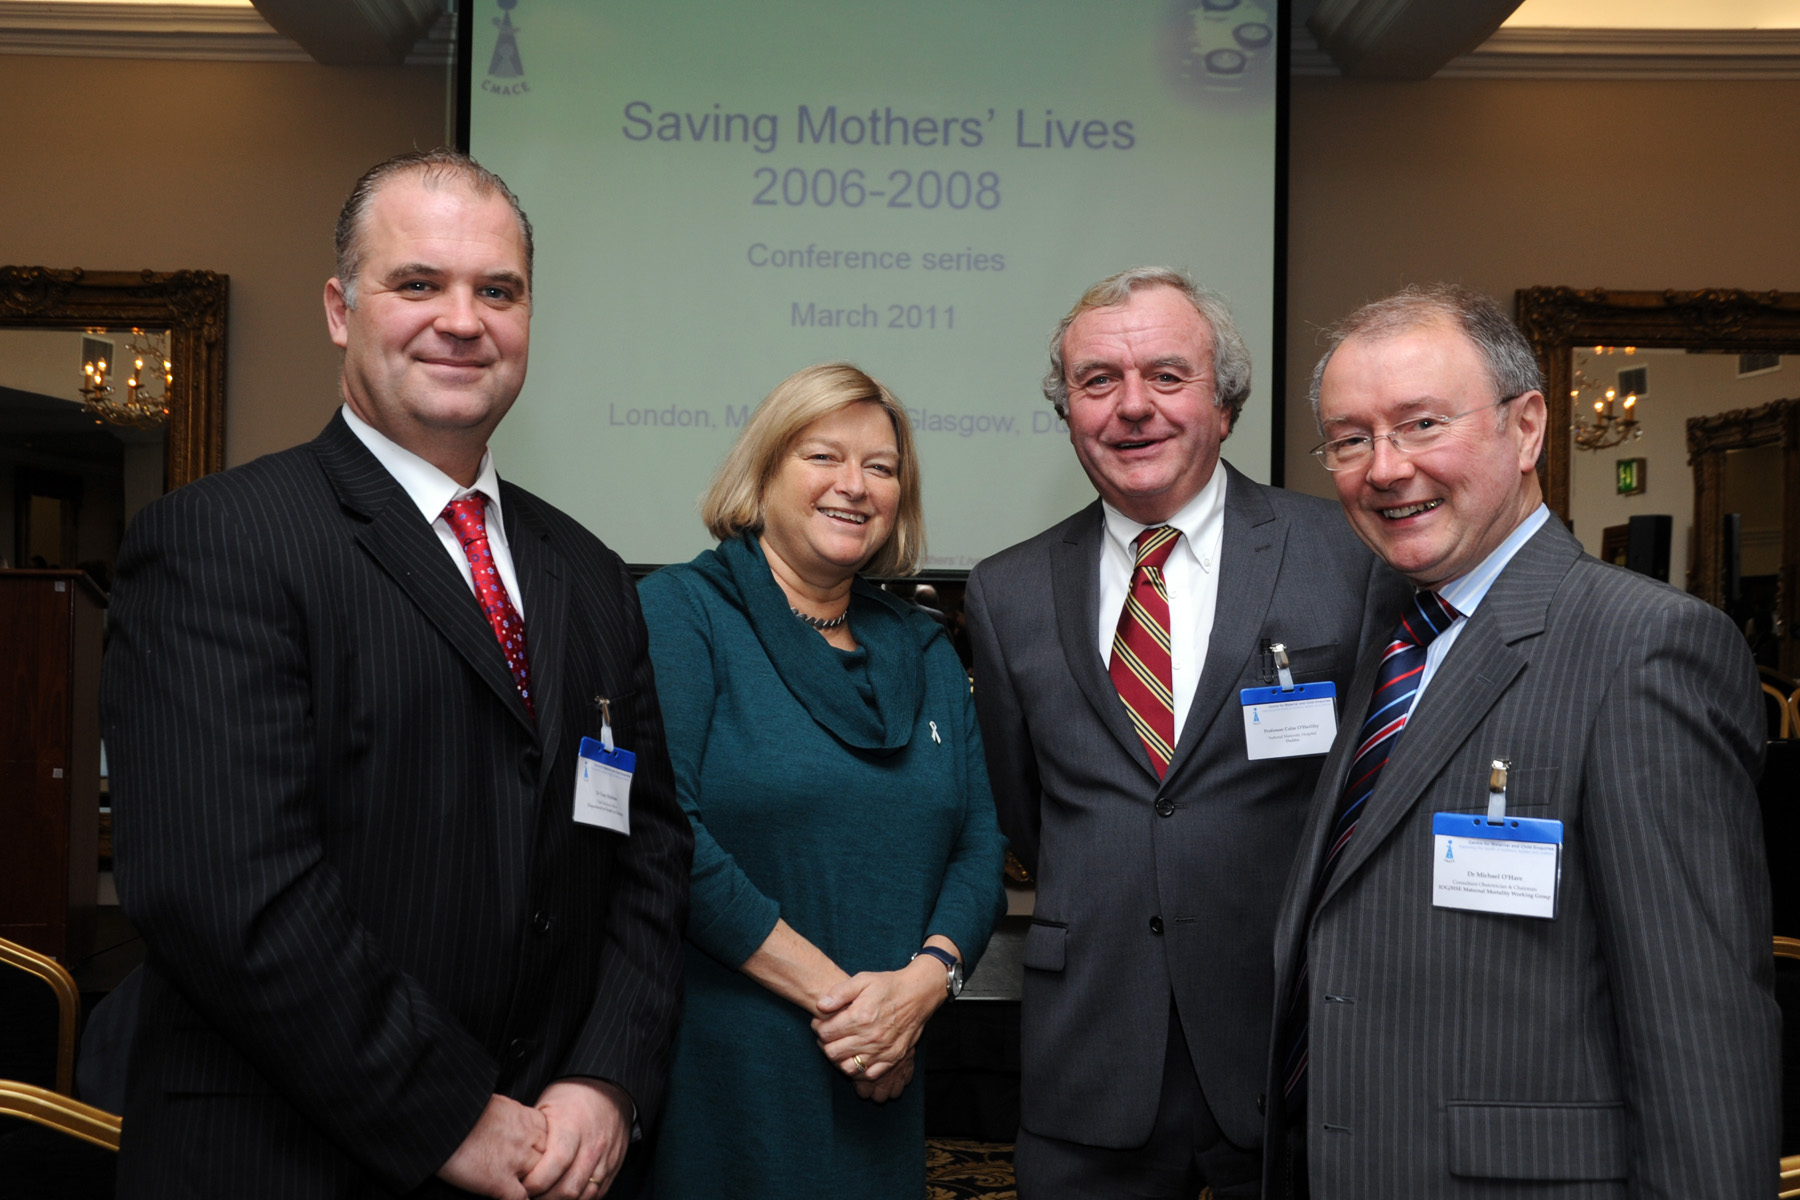 Saving Mothers' Lives Conference: Launch of the Eighth Report of the Confidential Enquiries into Maternal Deaths in the UK, Dublin, March 2011.